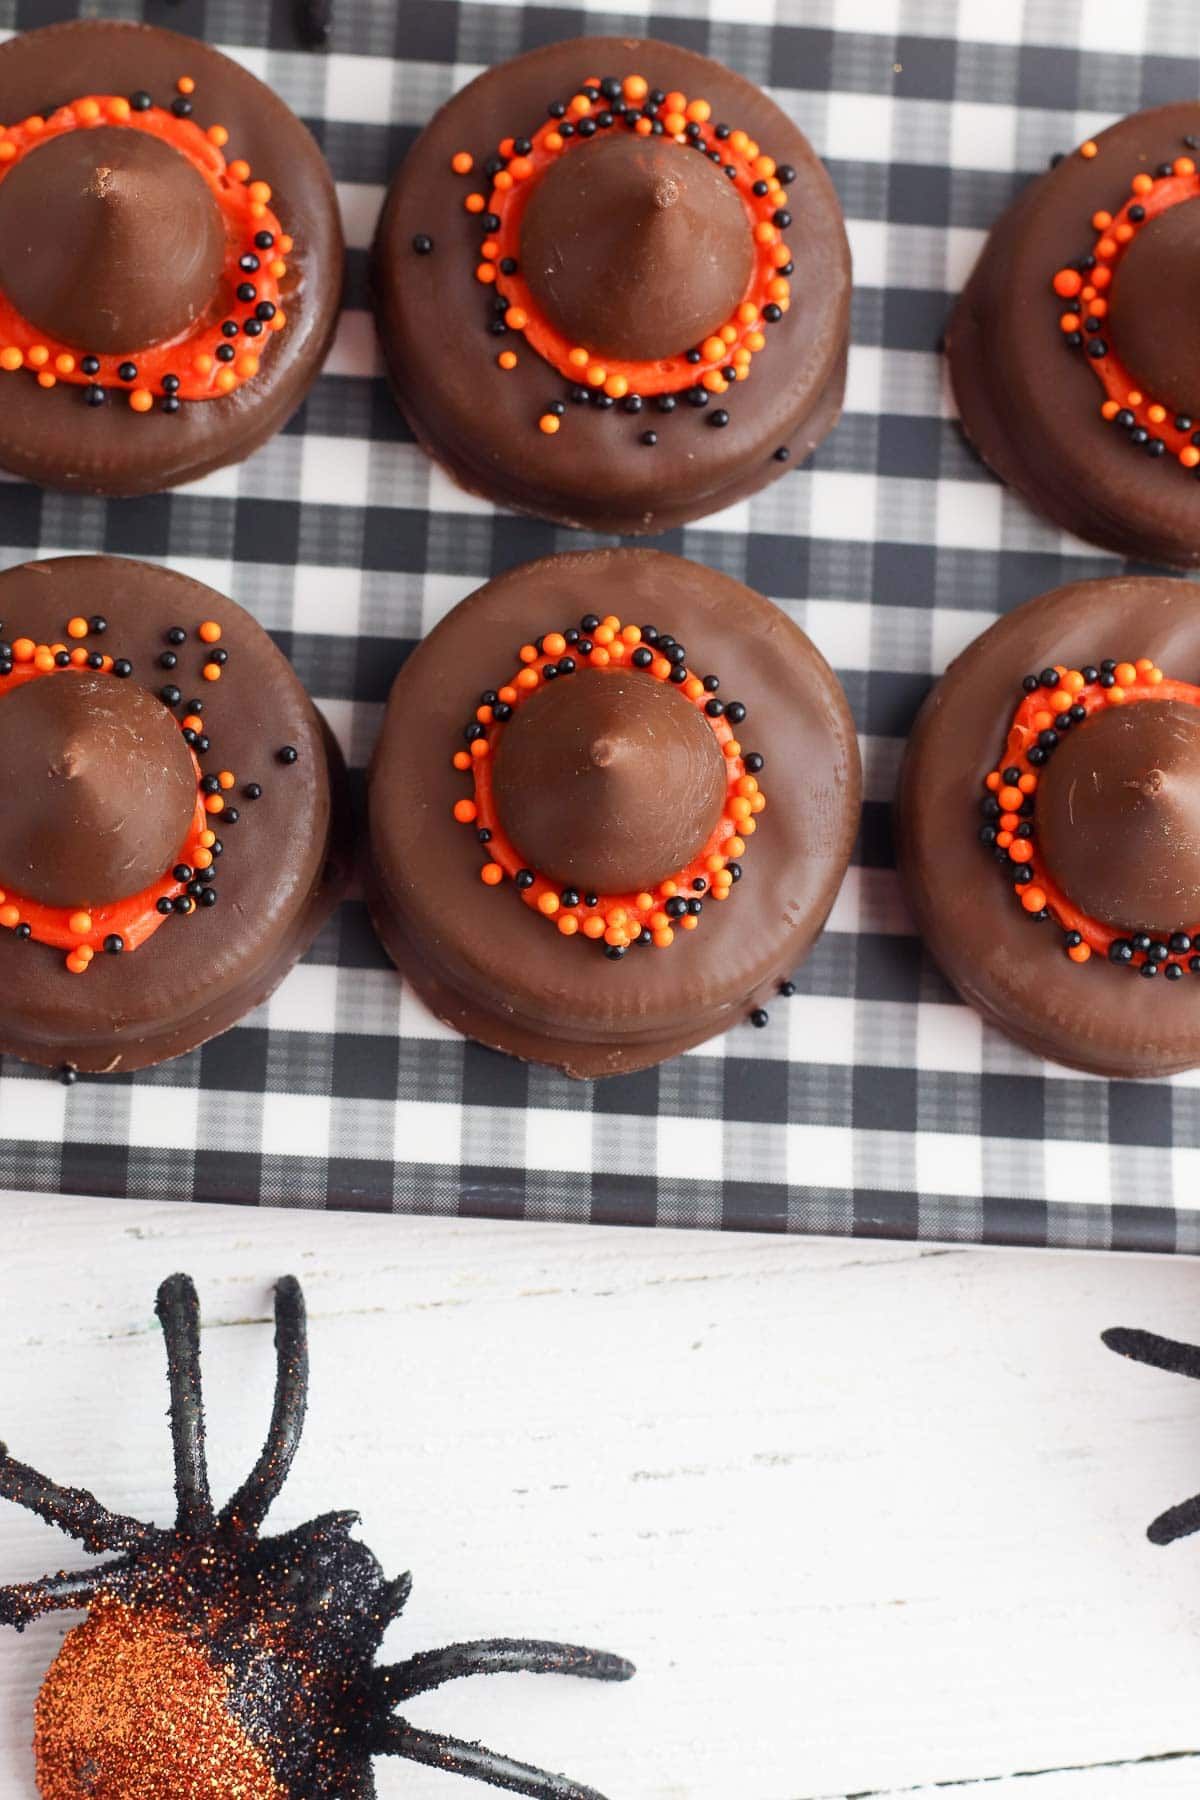 witch hat halloween cookies on tray from above